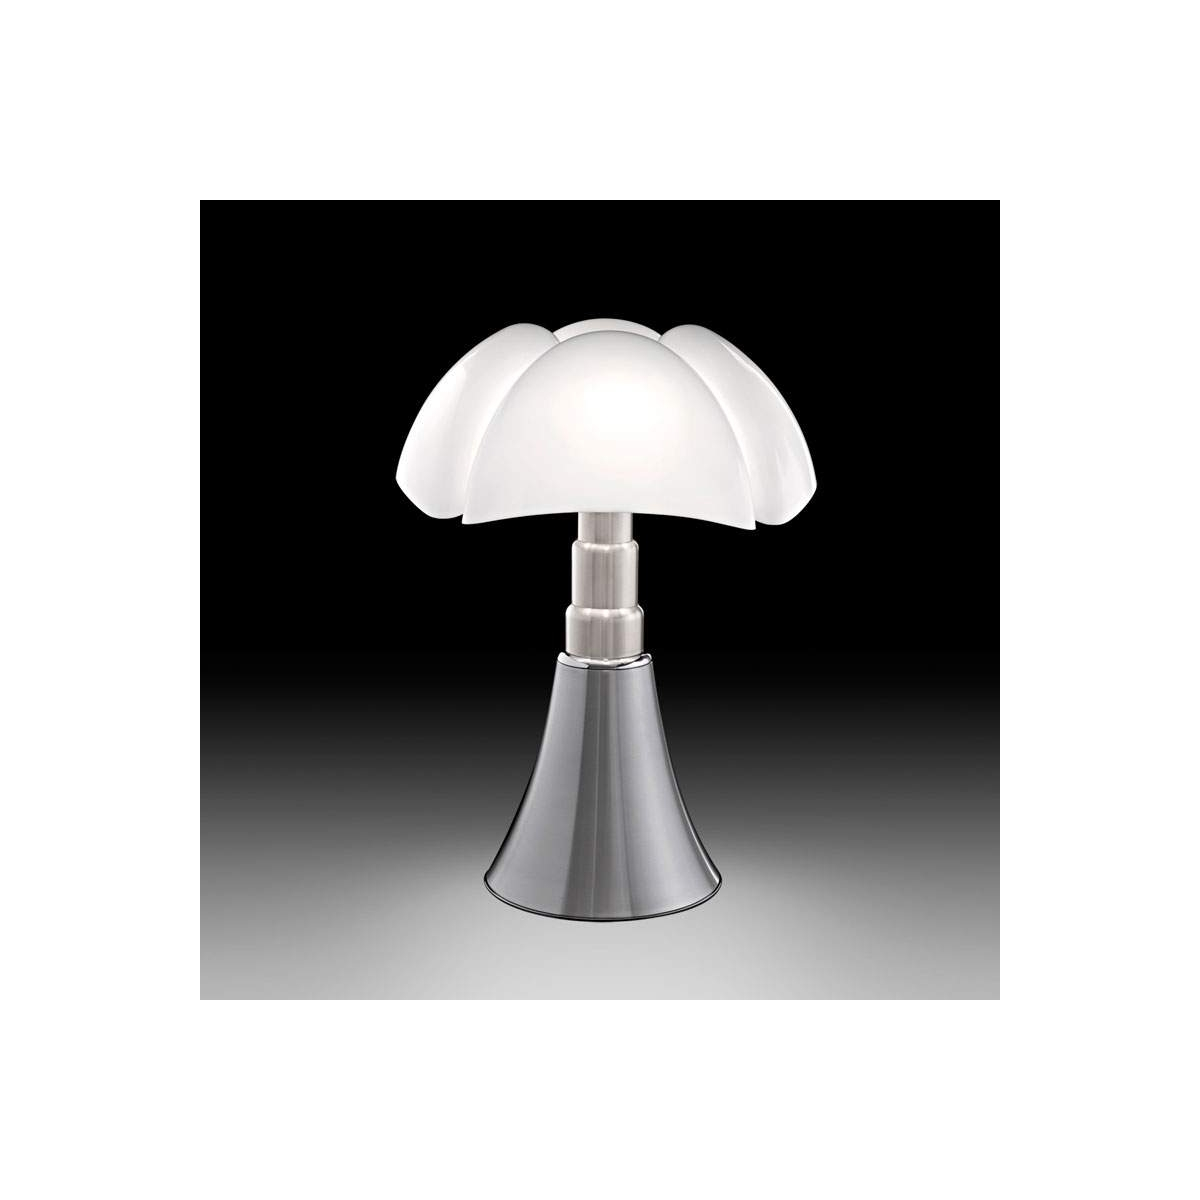 lampe de chevet tactile alinea lampe design a poser alinea u chaioscom with lampe plume alinea. Black Bedroom Furniture Sets. Home Design Ideas